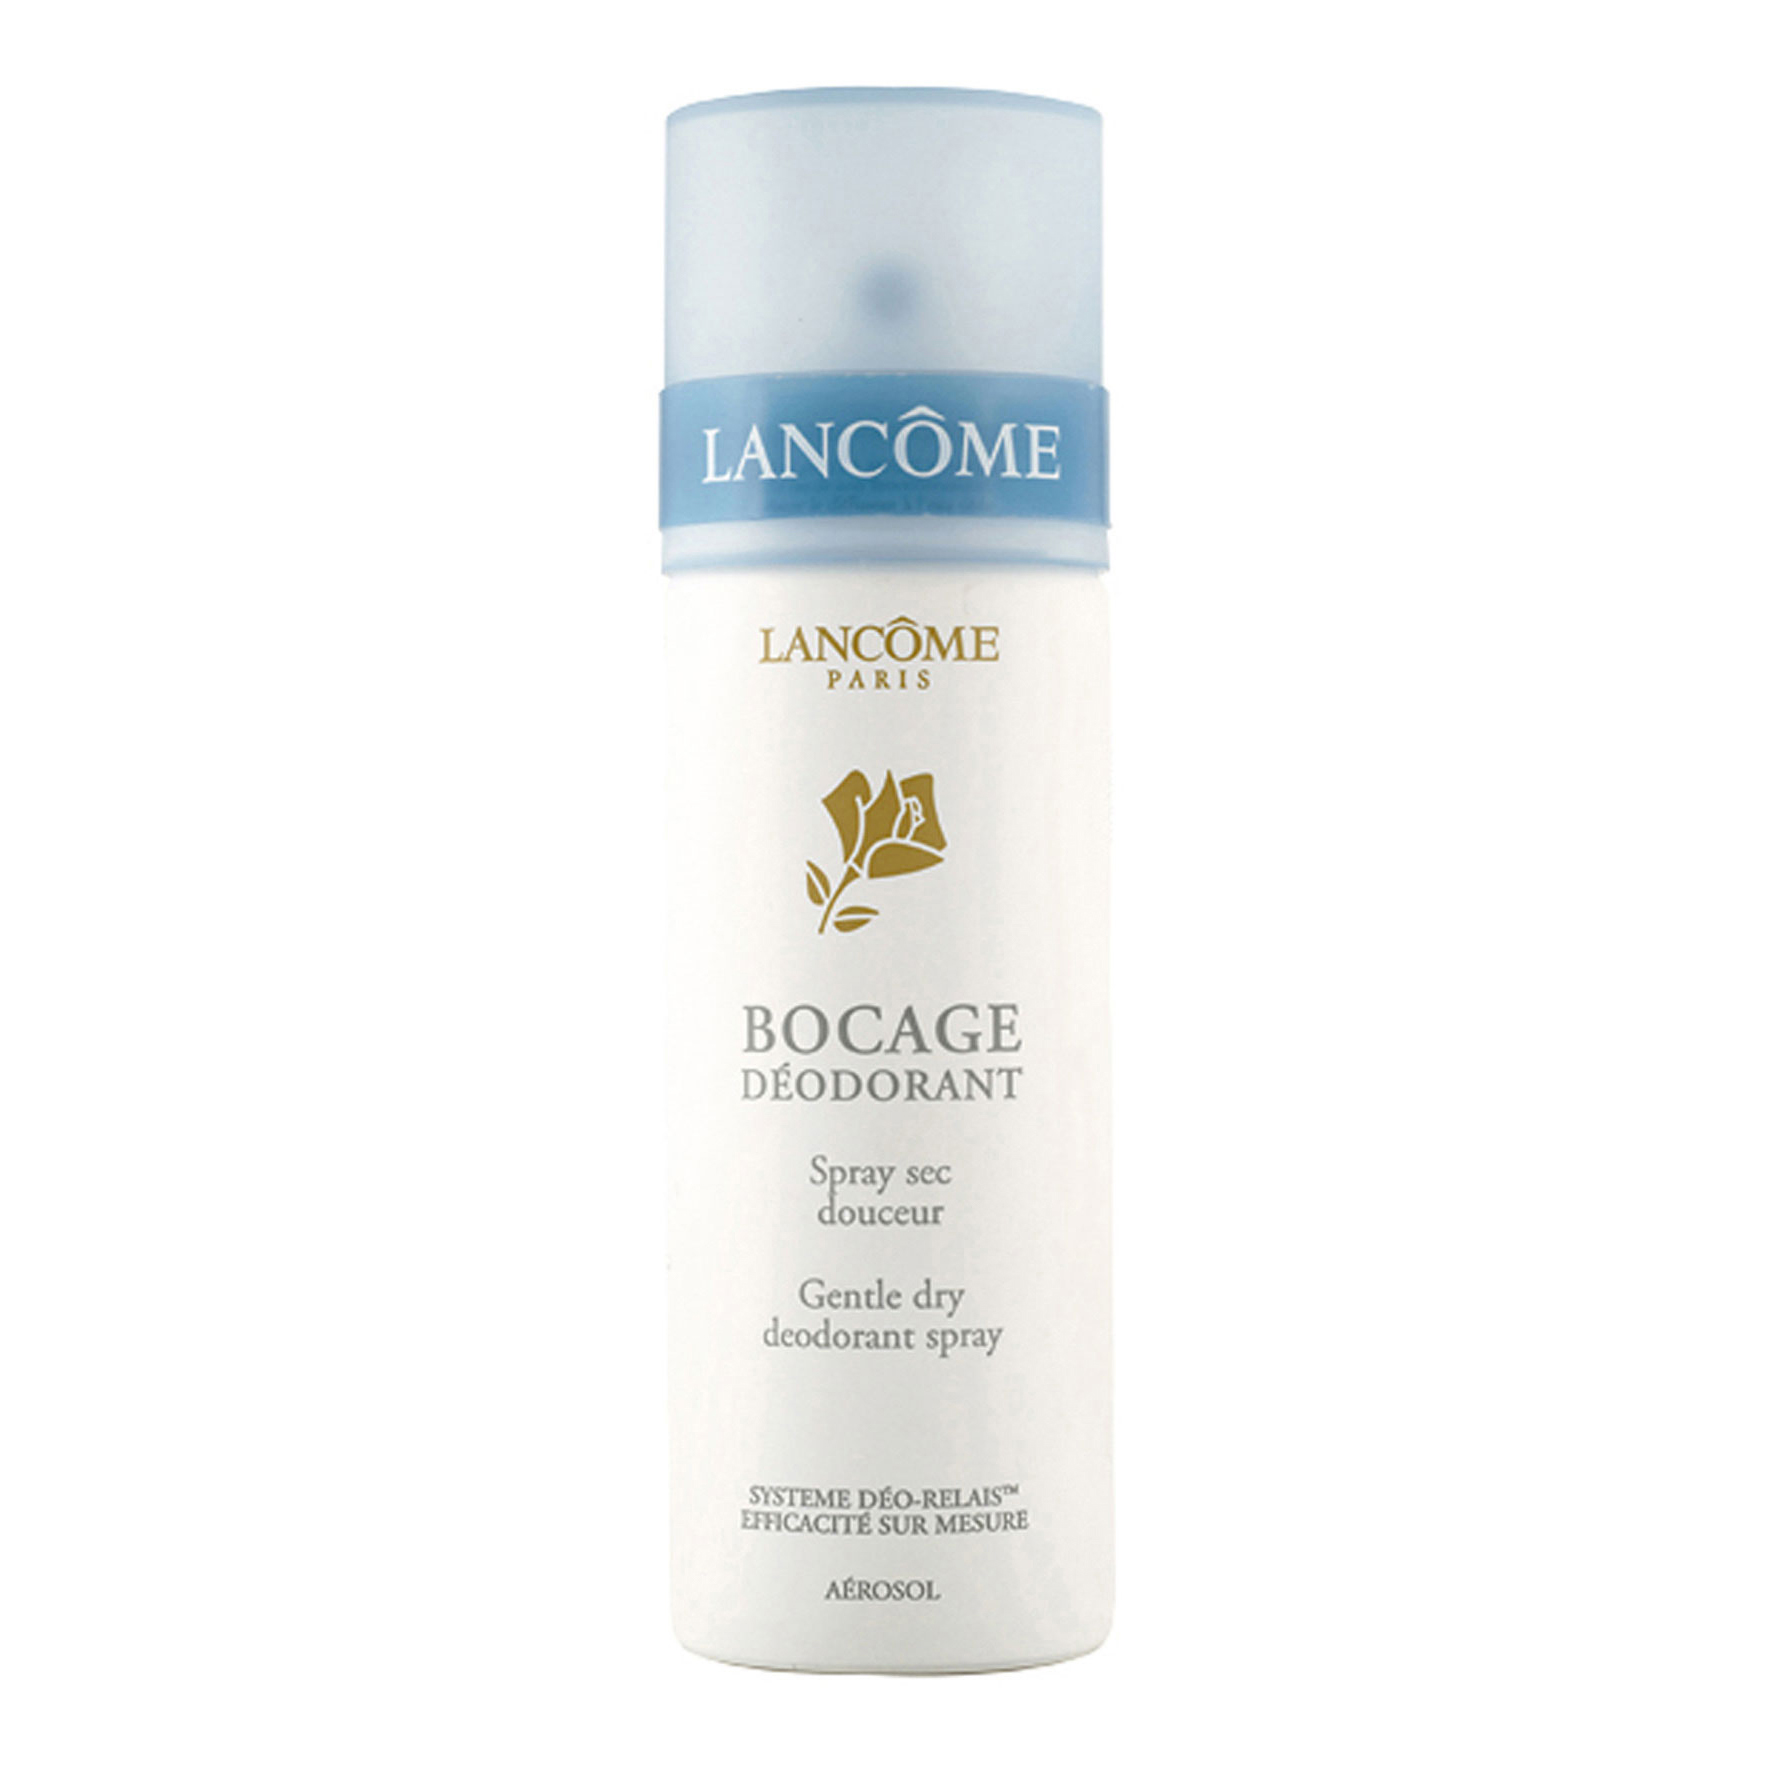 Bocage. LANCOME Déodorant Spray Gentle Day 125ml